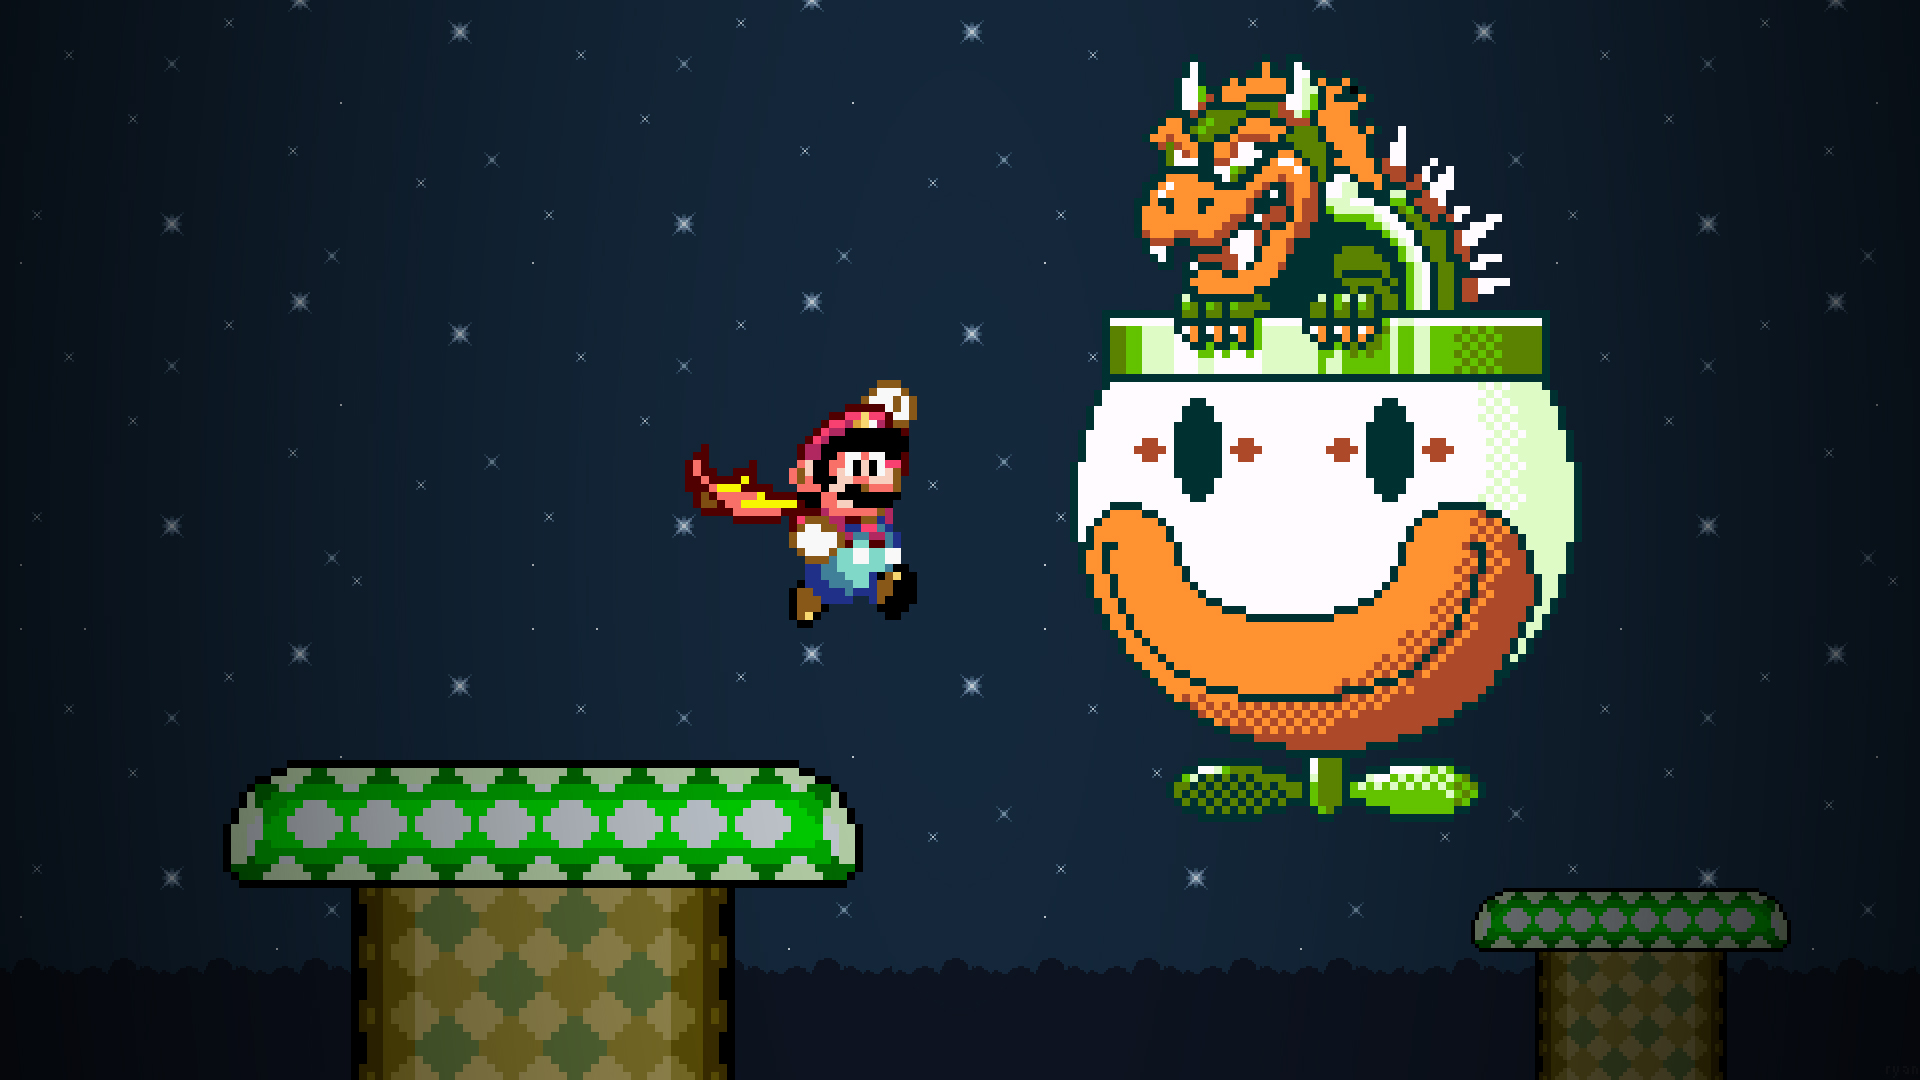 super mario world wallpaper hd